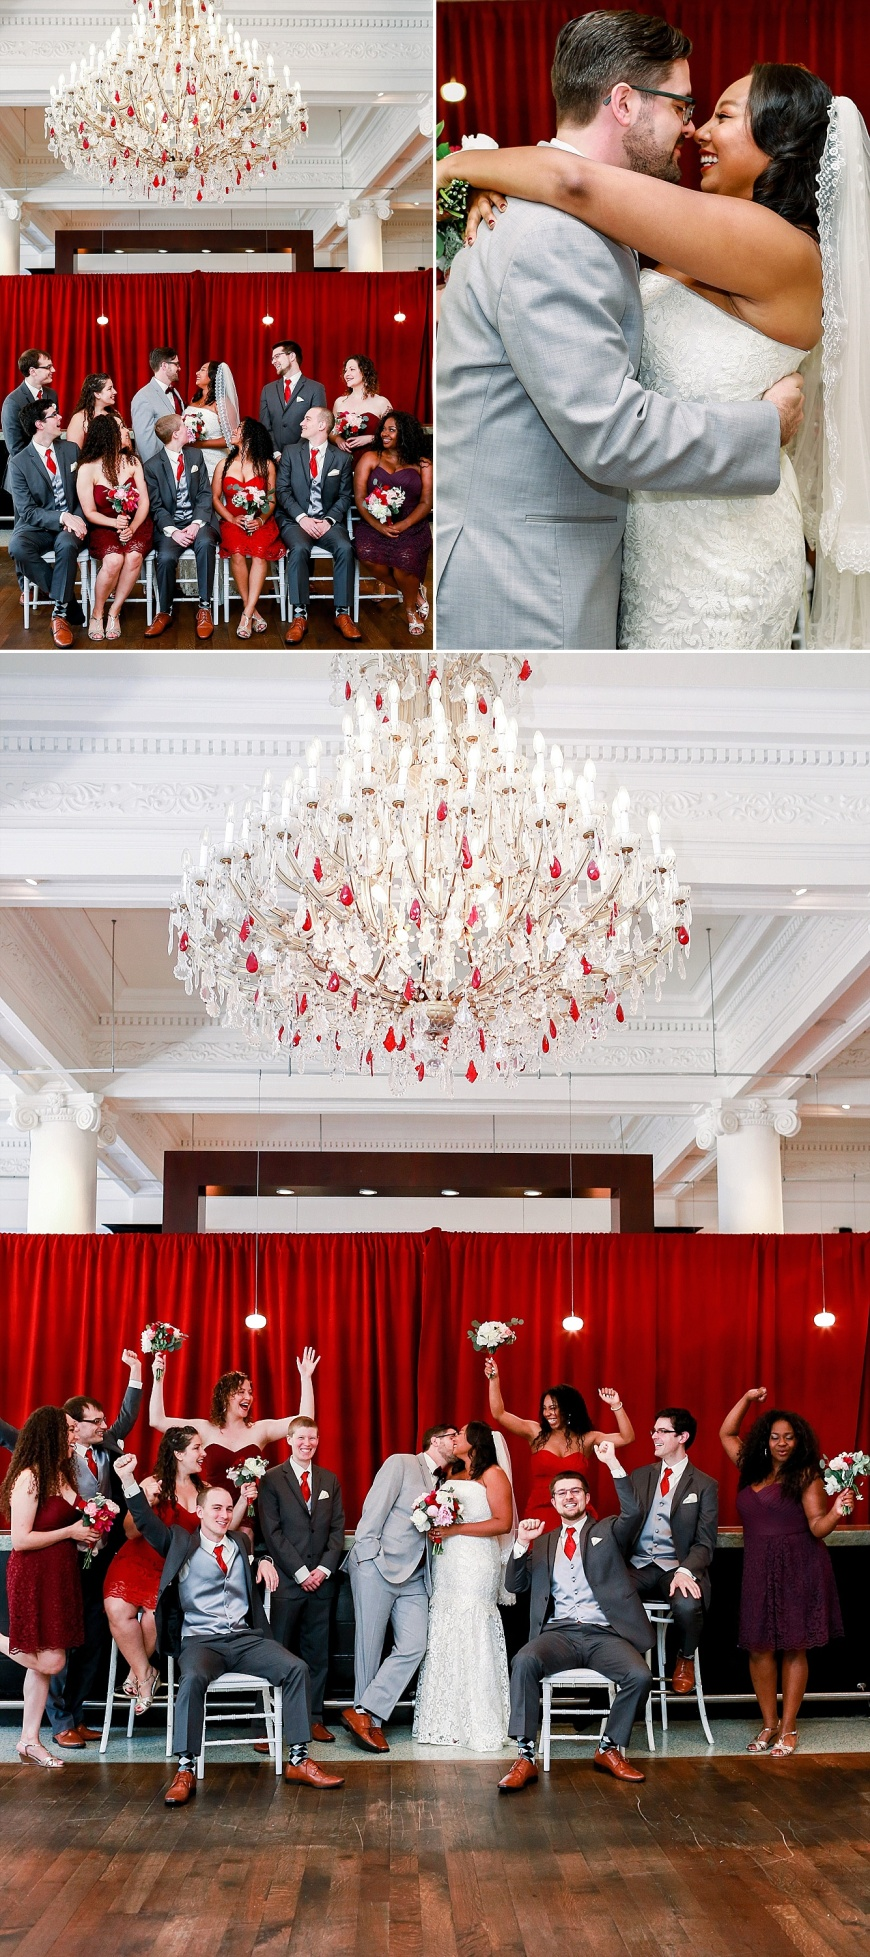 Hotel-Shattuck-Downtown-Berkeley-Wedding-Photographer_1033.jpg